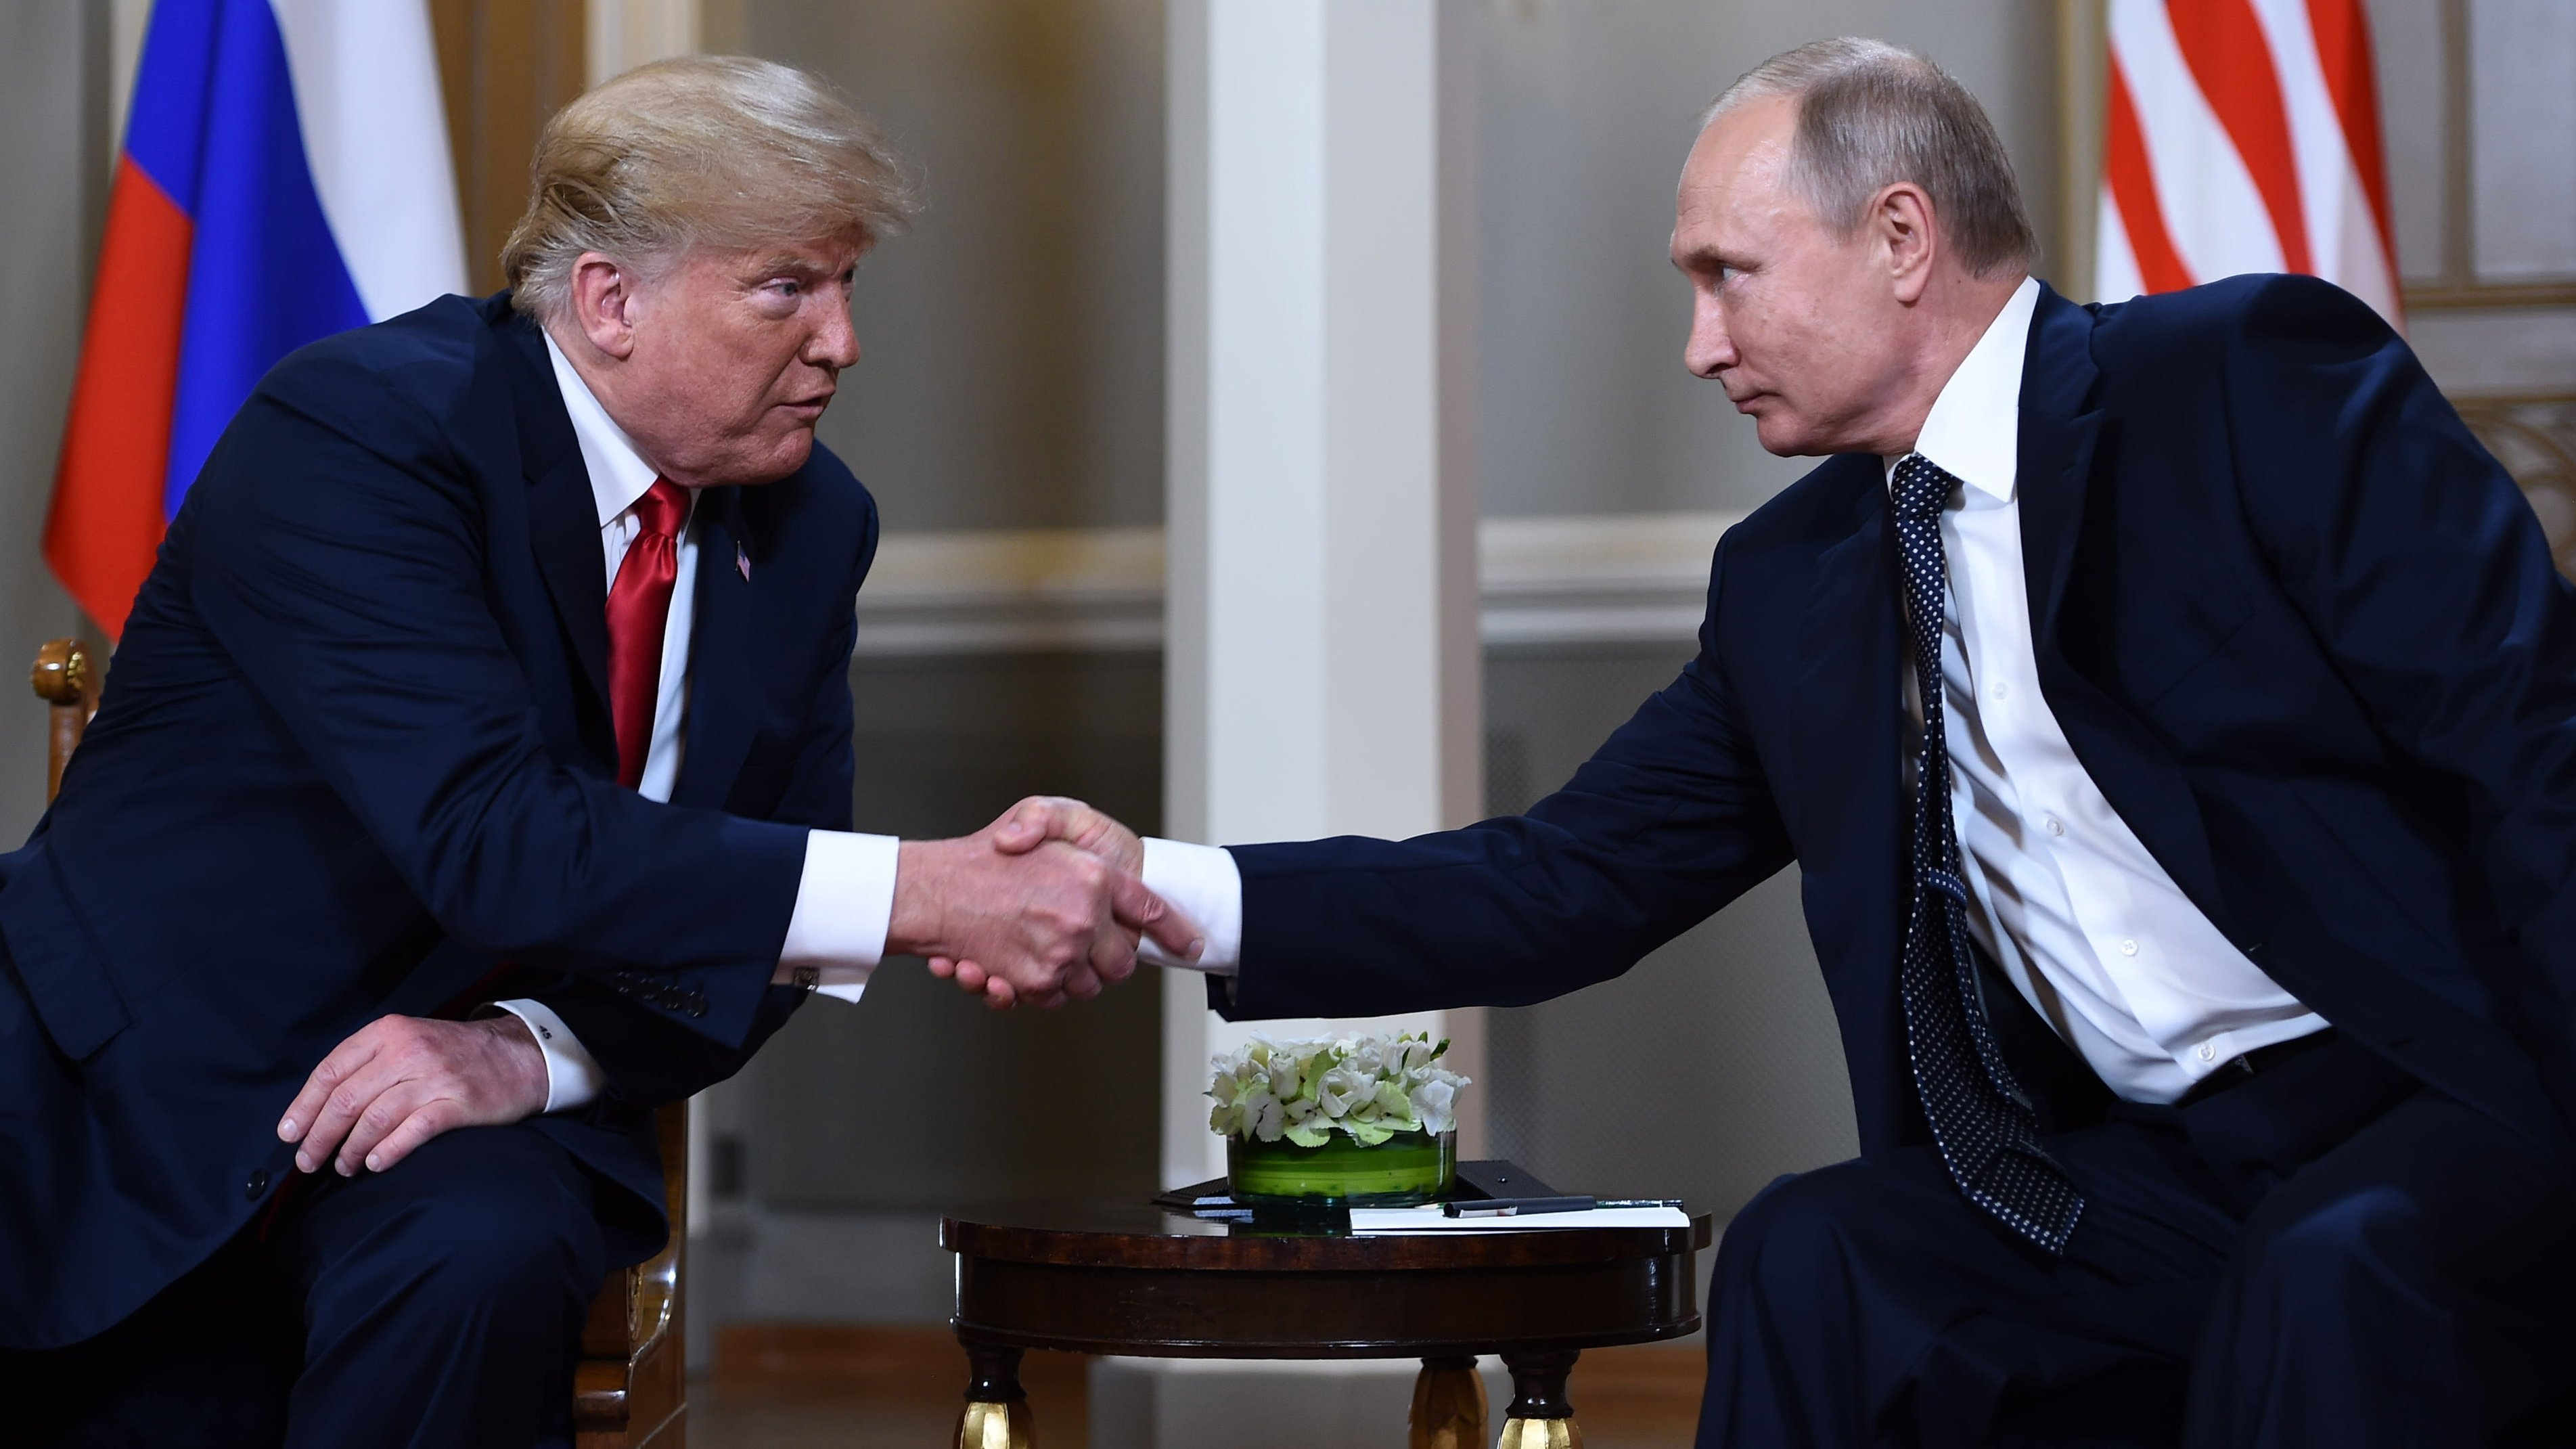 Trump keeps up defense of Helsinki performance